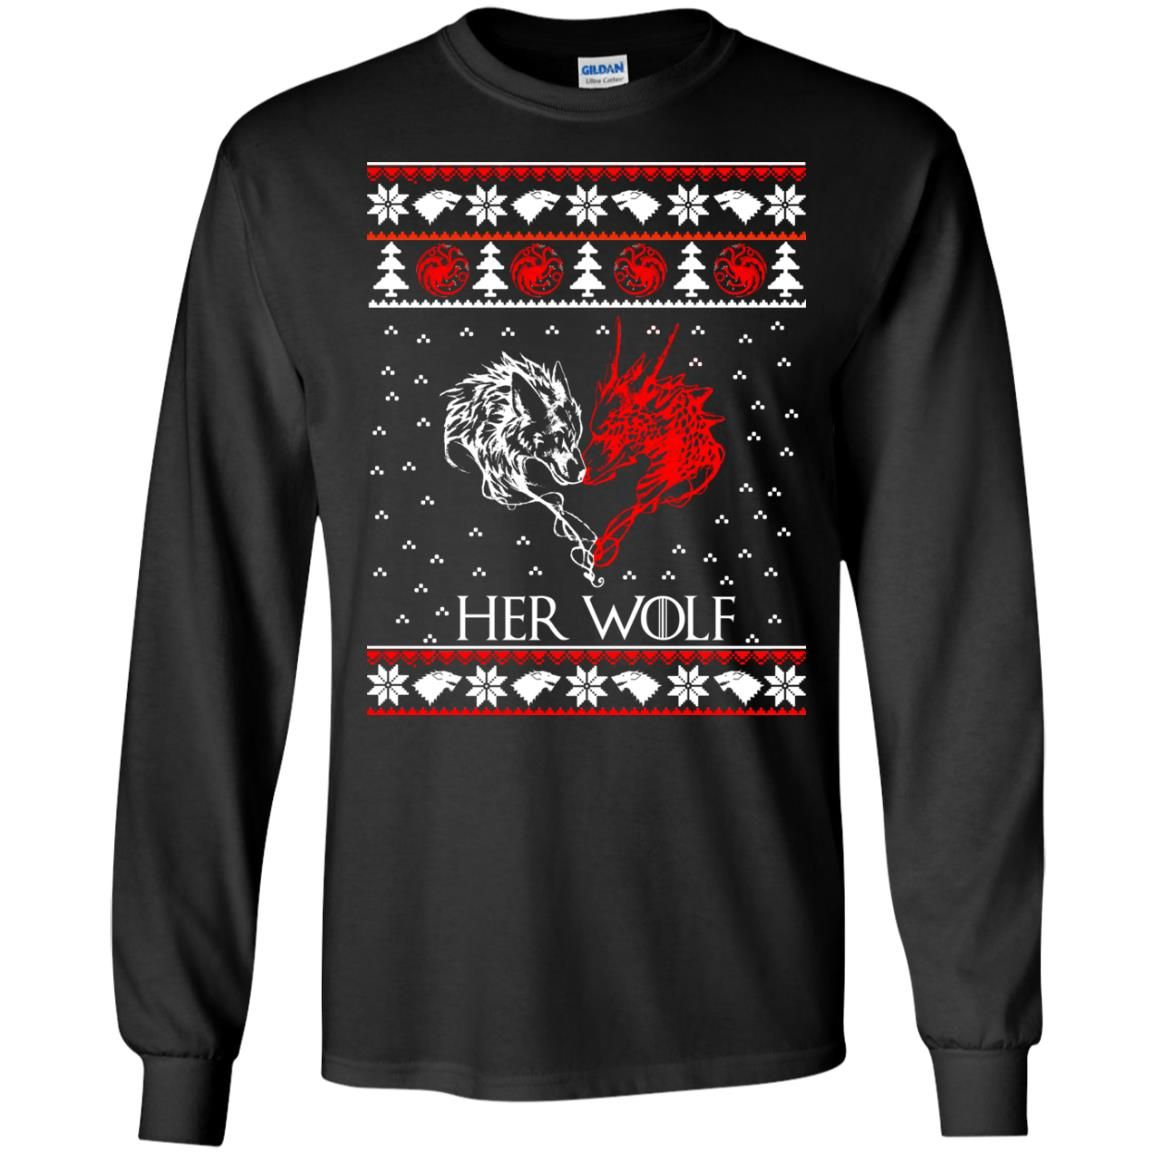 image 792 - Game of Thrones: Her Wolf Ugly Christmas Sweater, hoodie, shirt